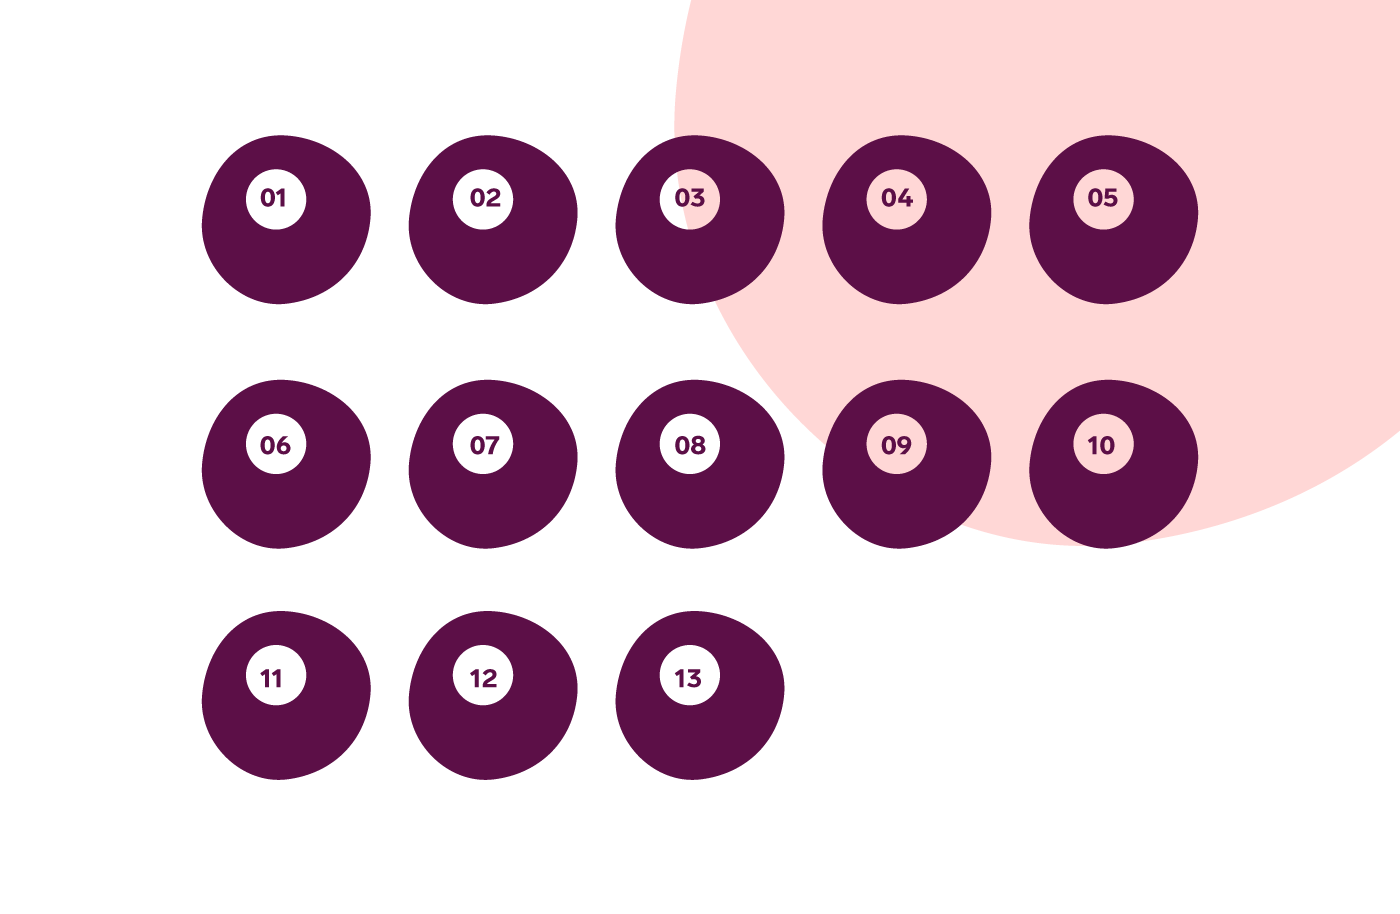 13 purple female egg cells on a pink and white background